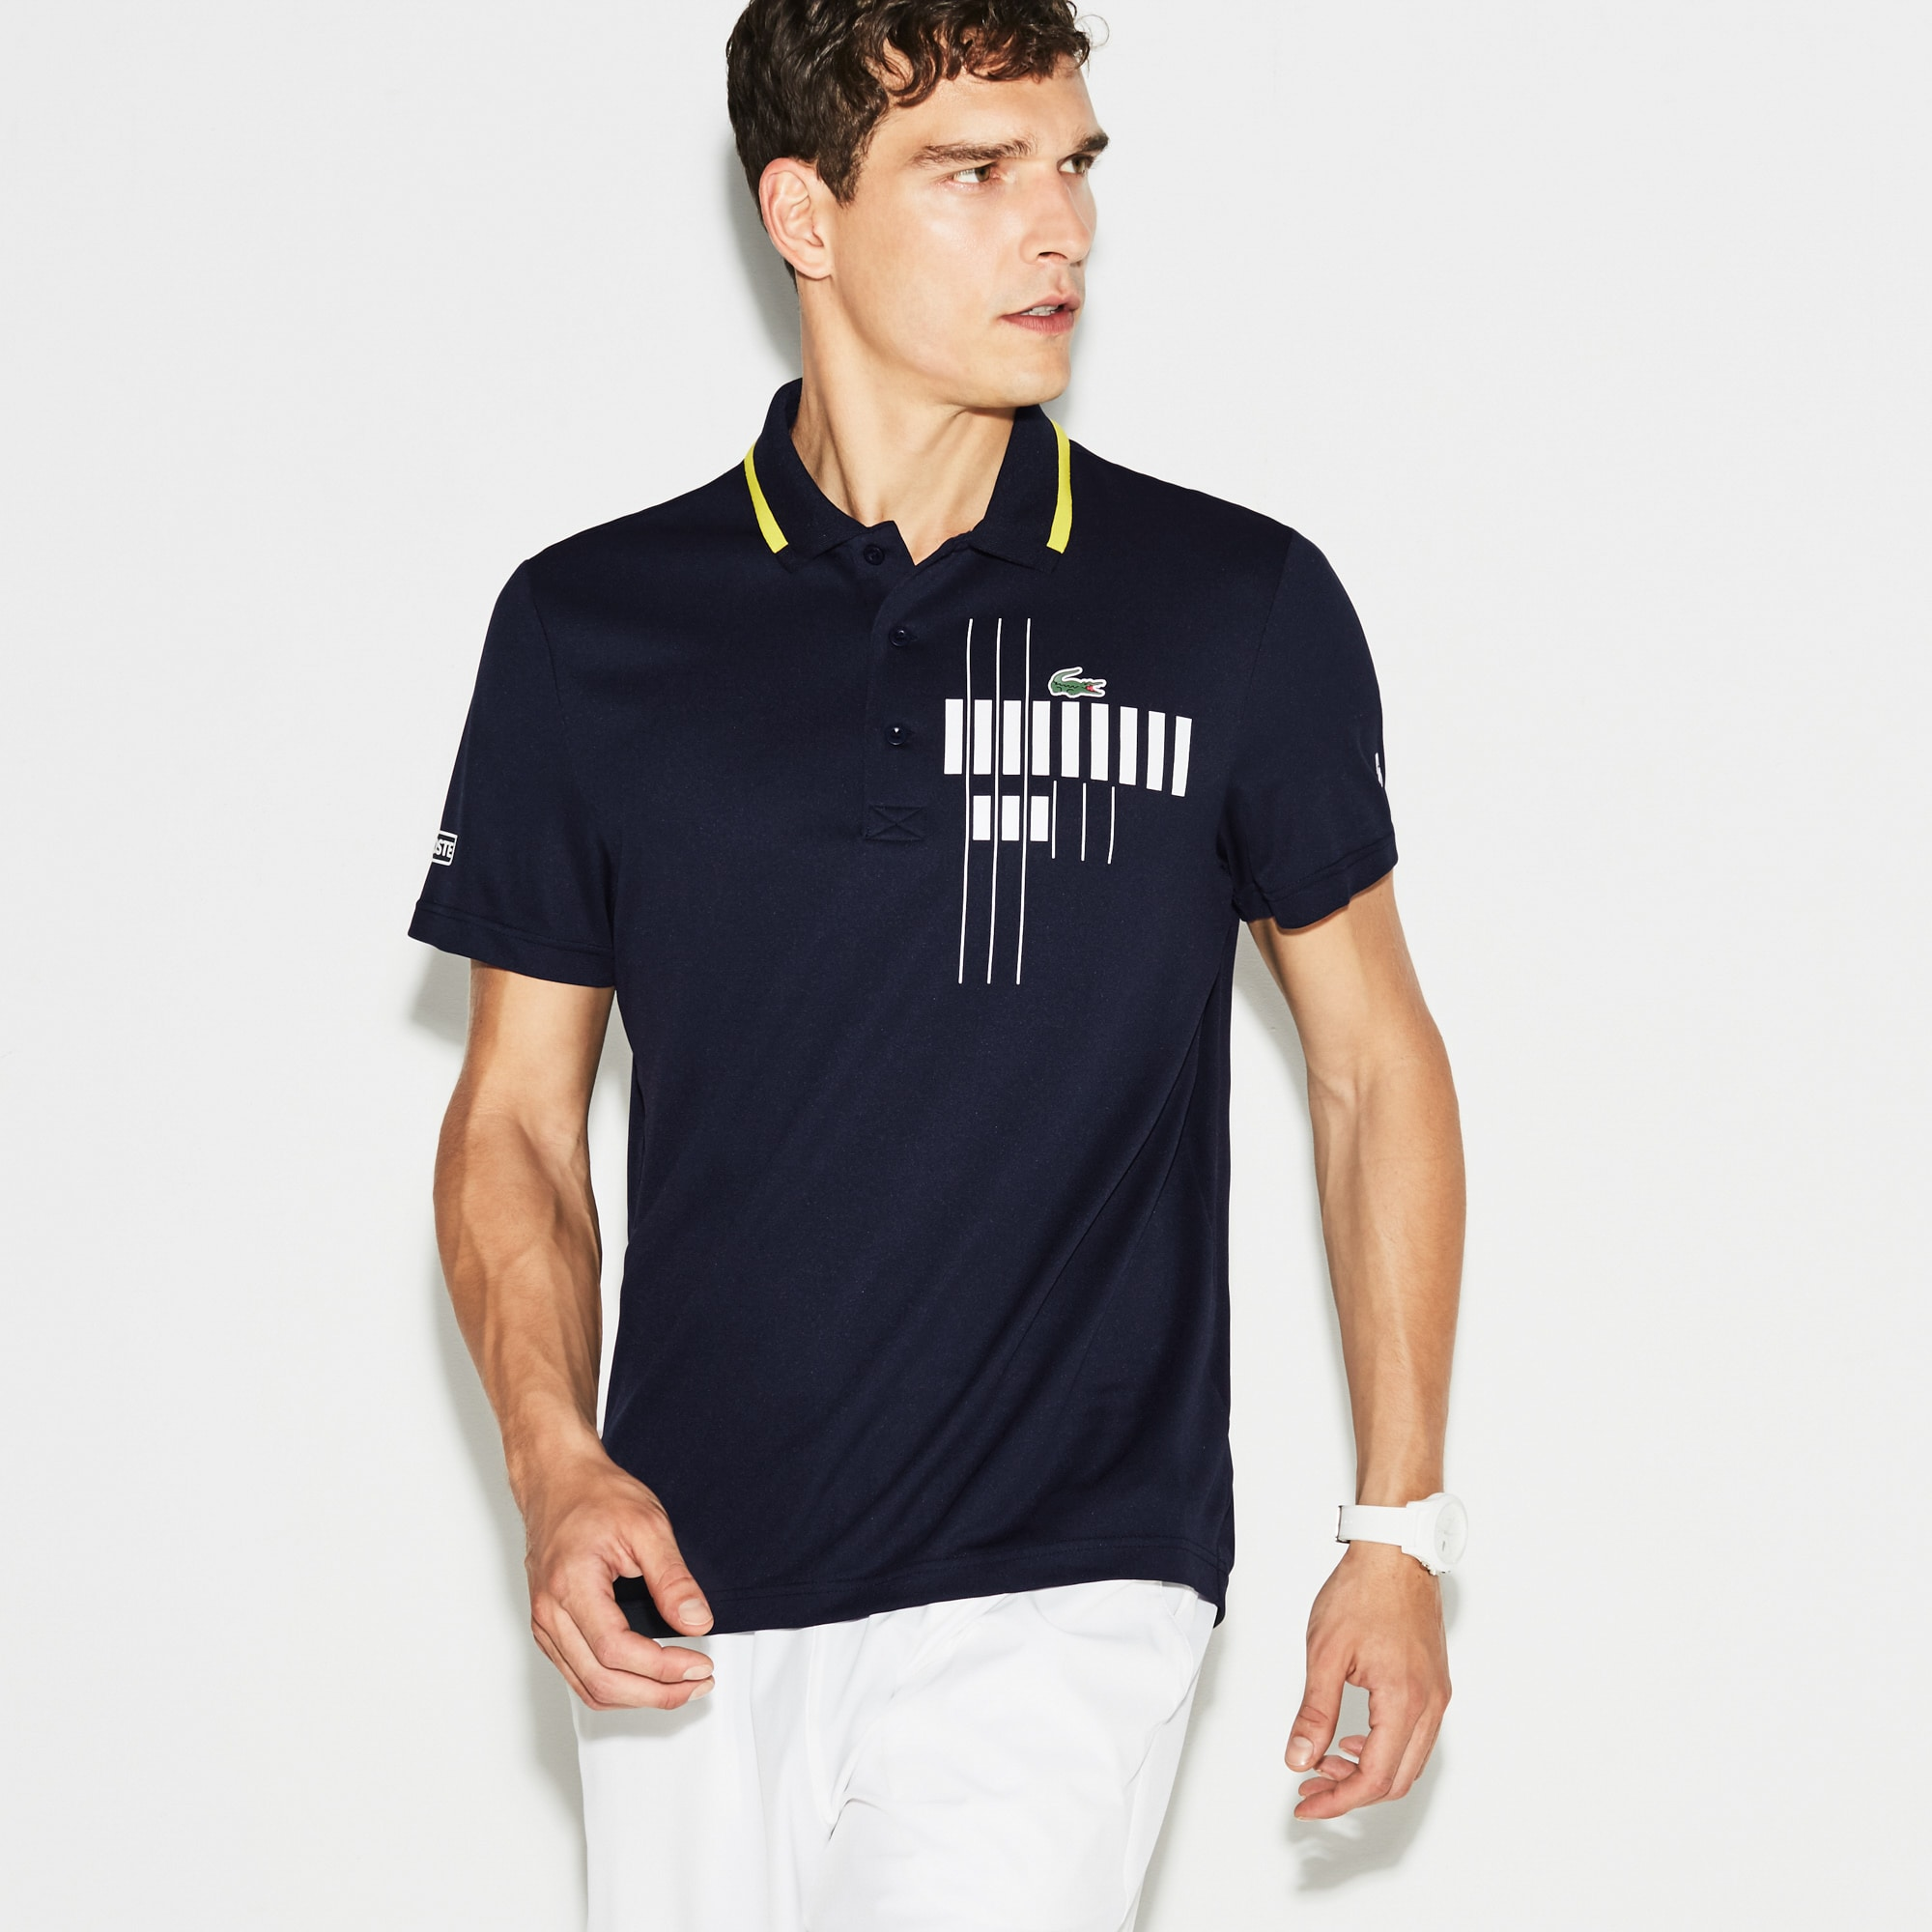 Jaqueta Lacoste Collection para Novak Djokovic – Exclusiva Blue Edition